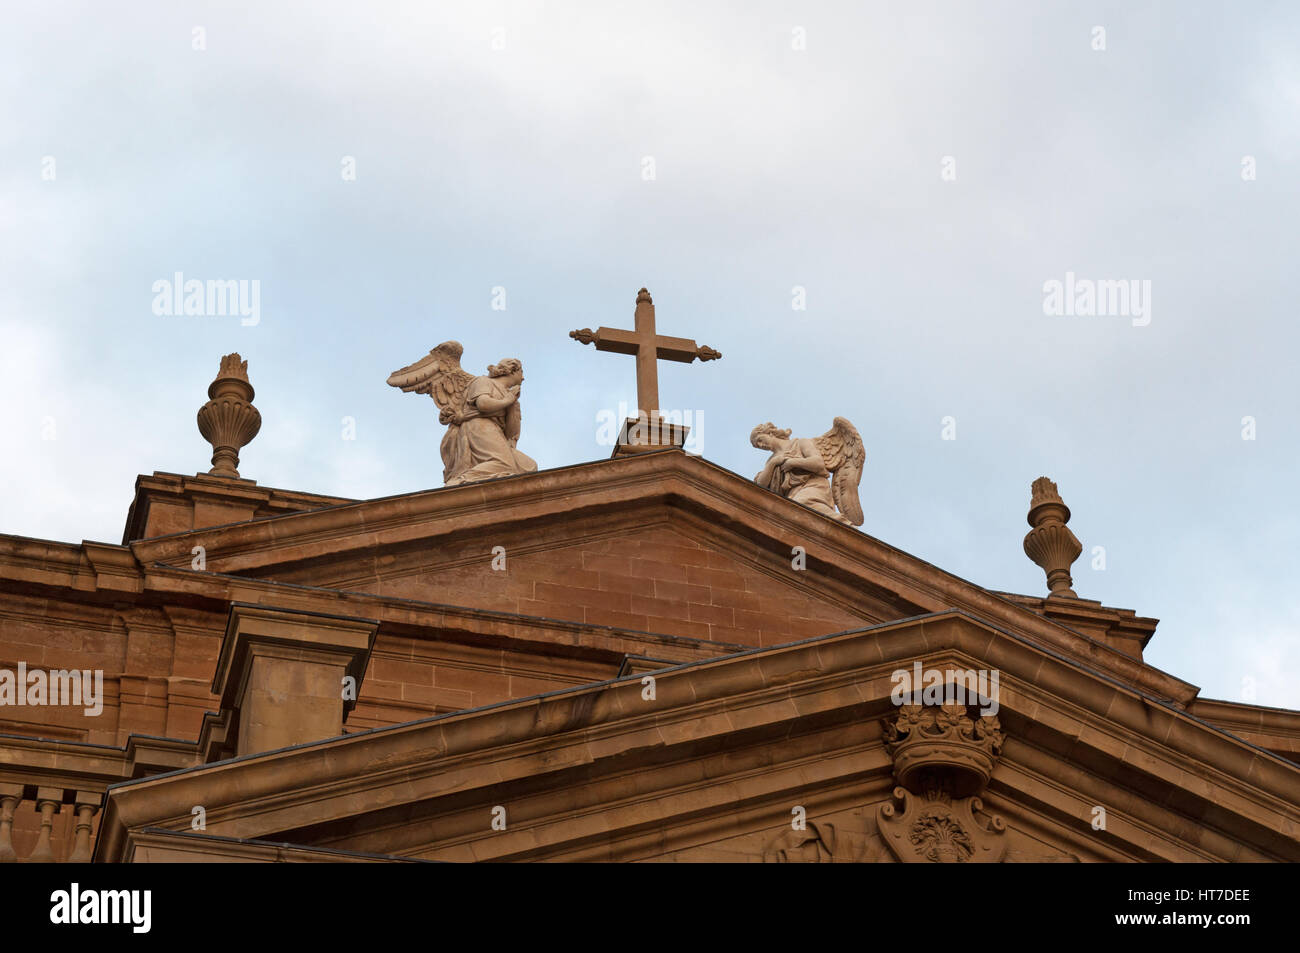 Spain: the pediment of the Cathedral, the roman catholic church of Santa Maria la Real in Pamplona, the Old City - Stock Image